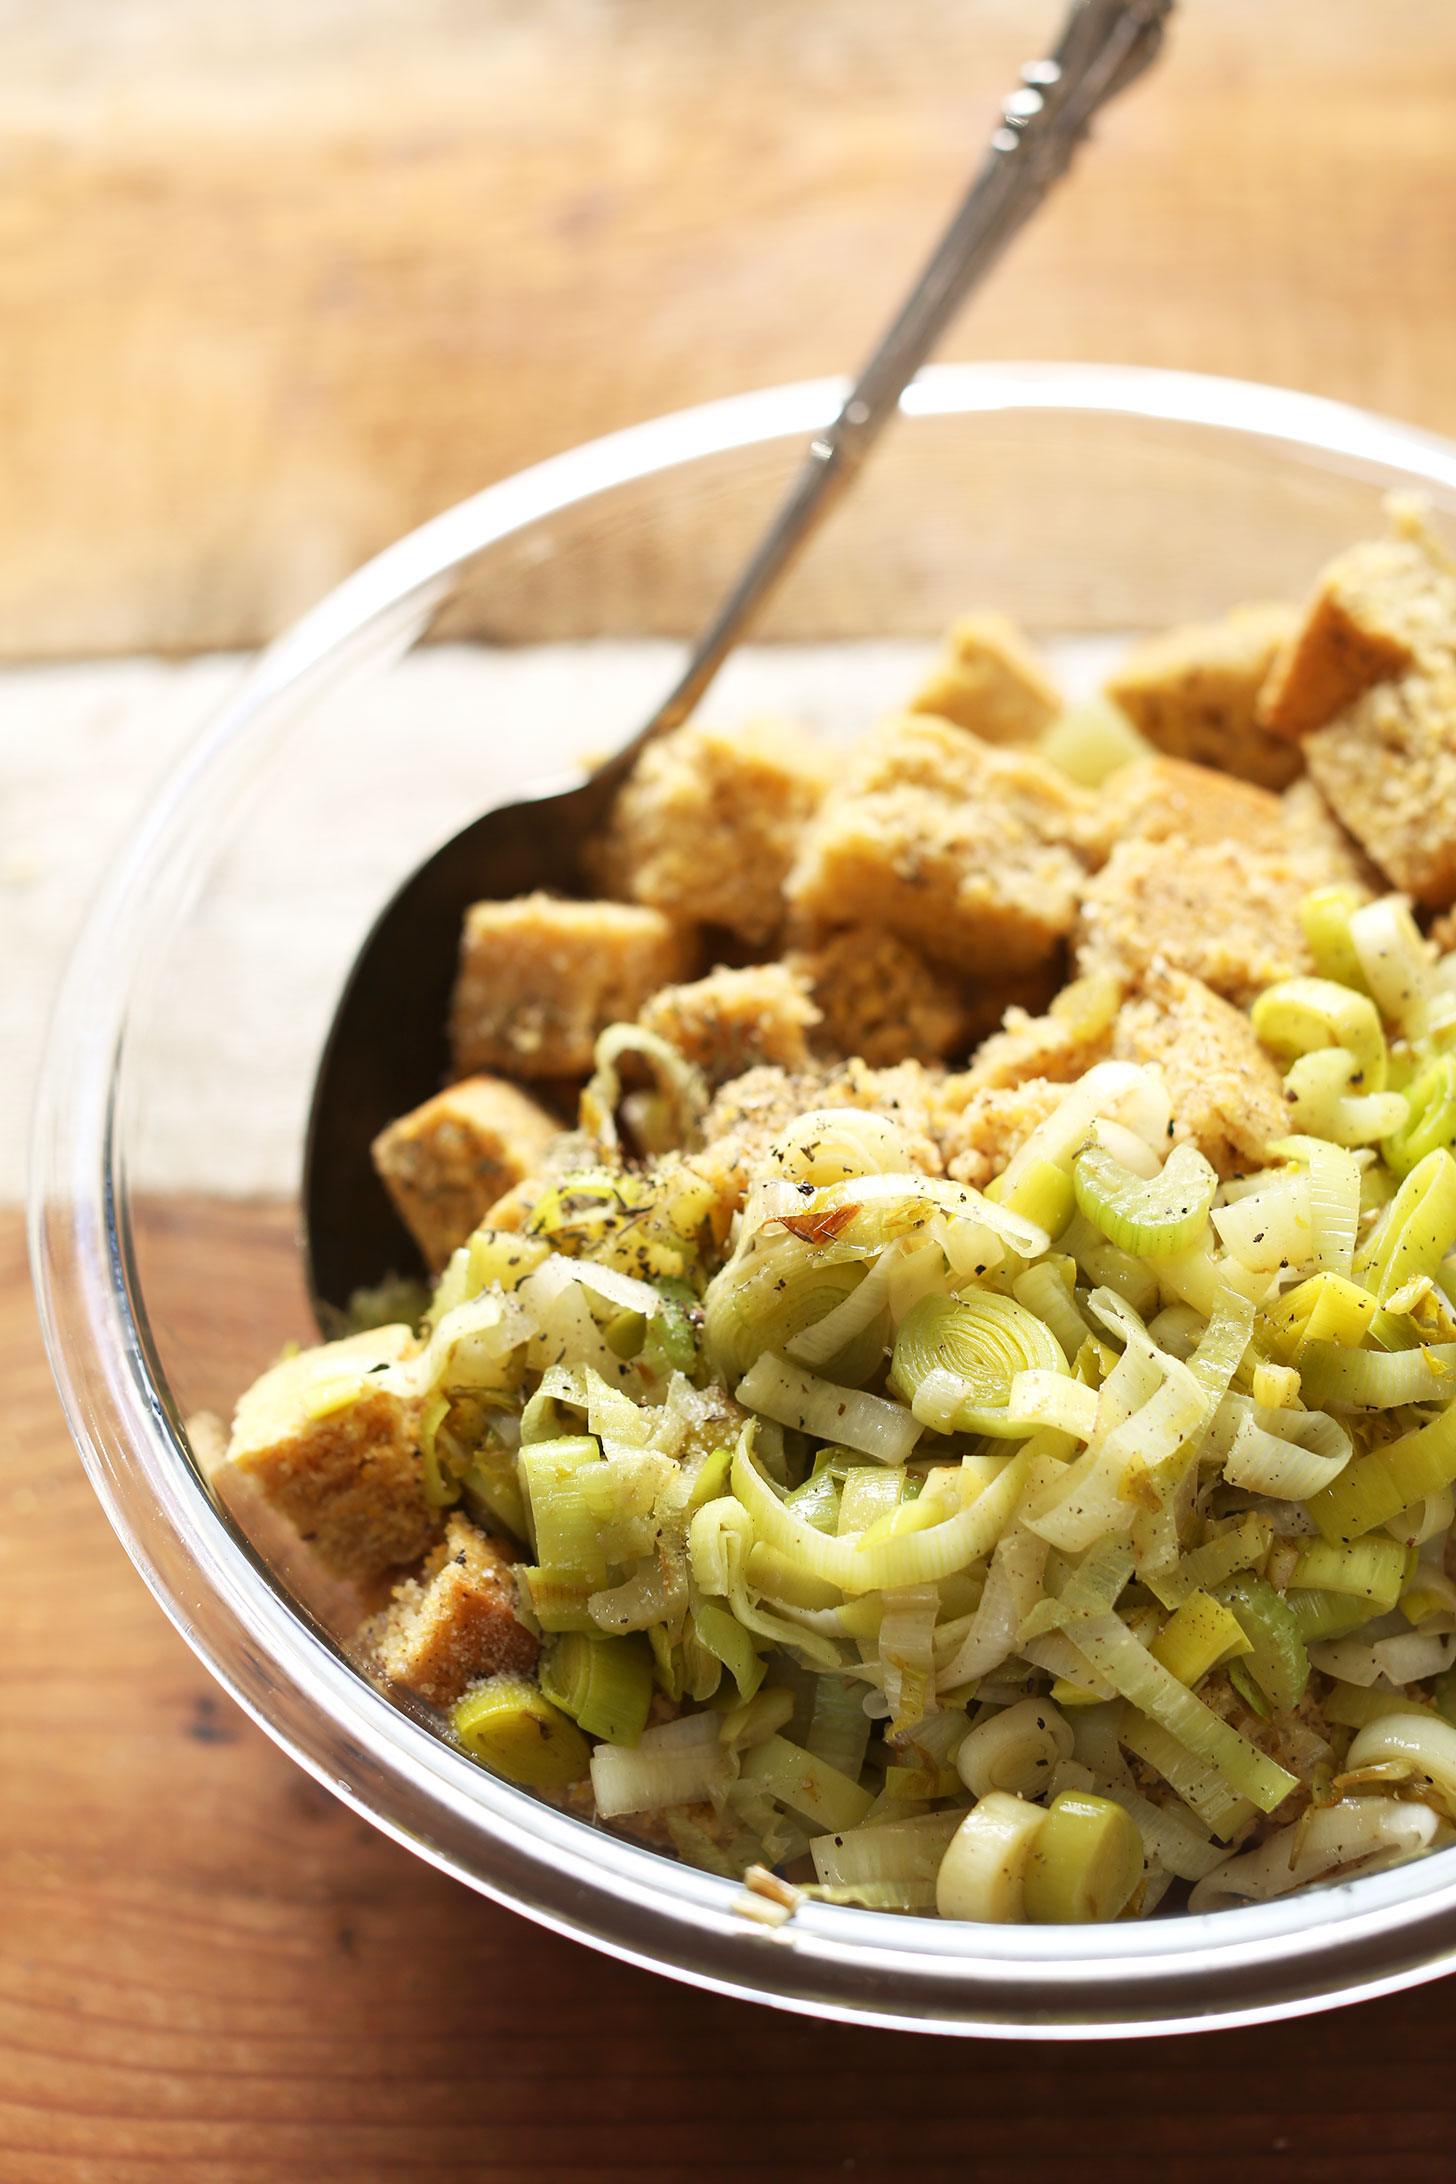 A bowl full of leeks and cornbread for making Vegan Gluten-Free Cornbread Stuffing